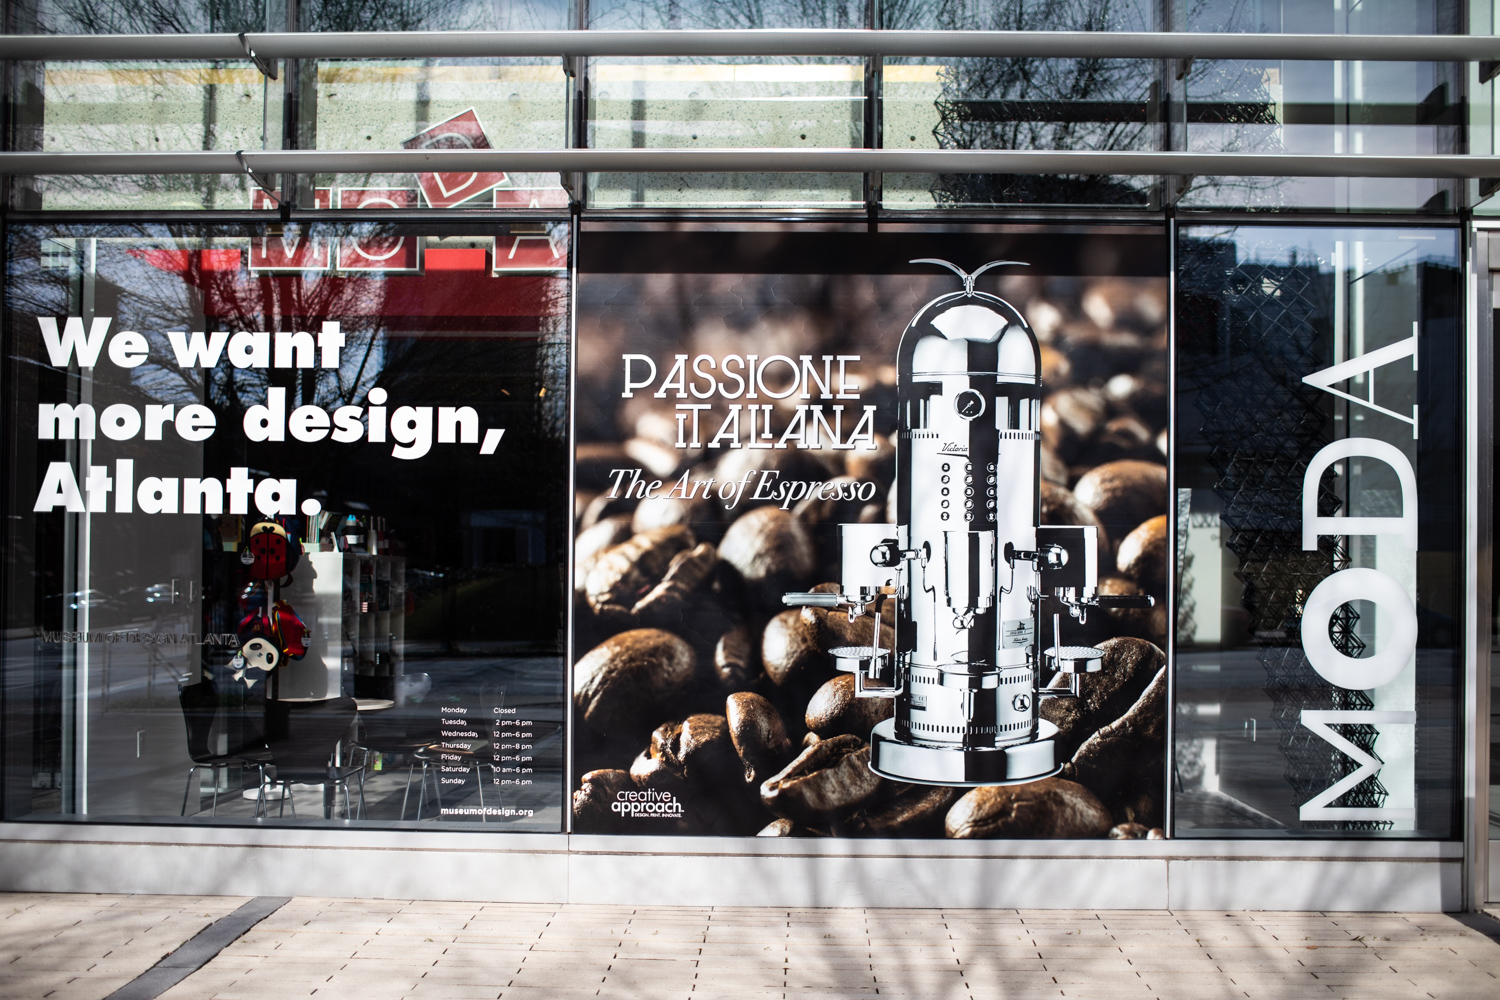 Exterior view of the  Passione Italiana  exhibit at Museum of Design Atlanta.